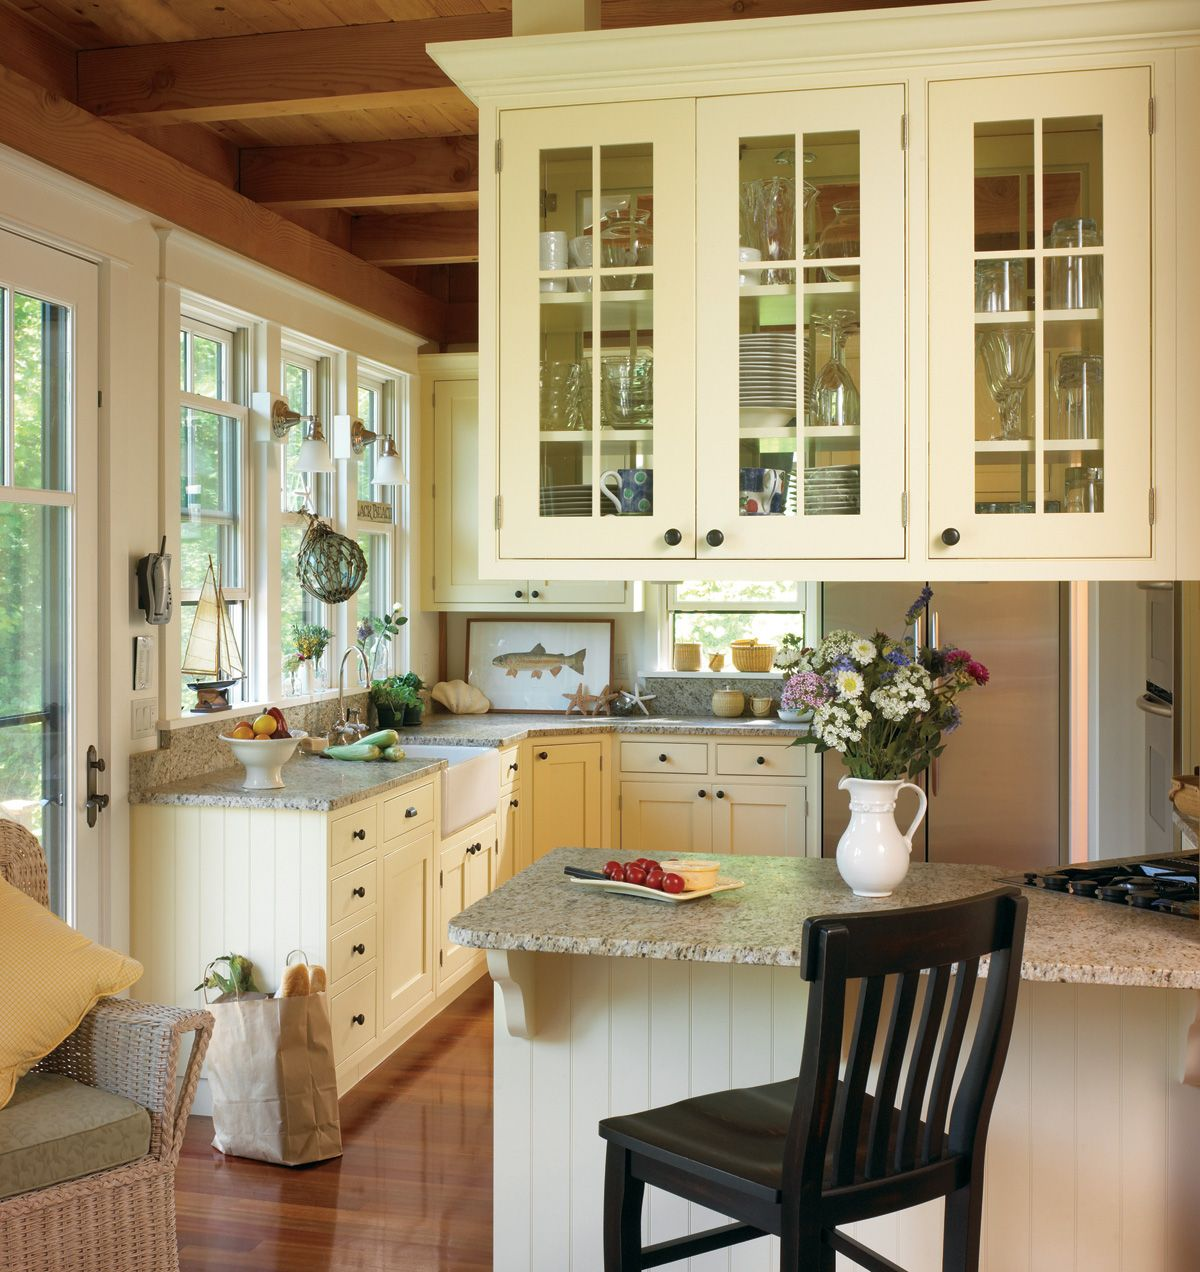 Medium Of French Country Cottage Kitchen Designs